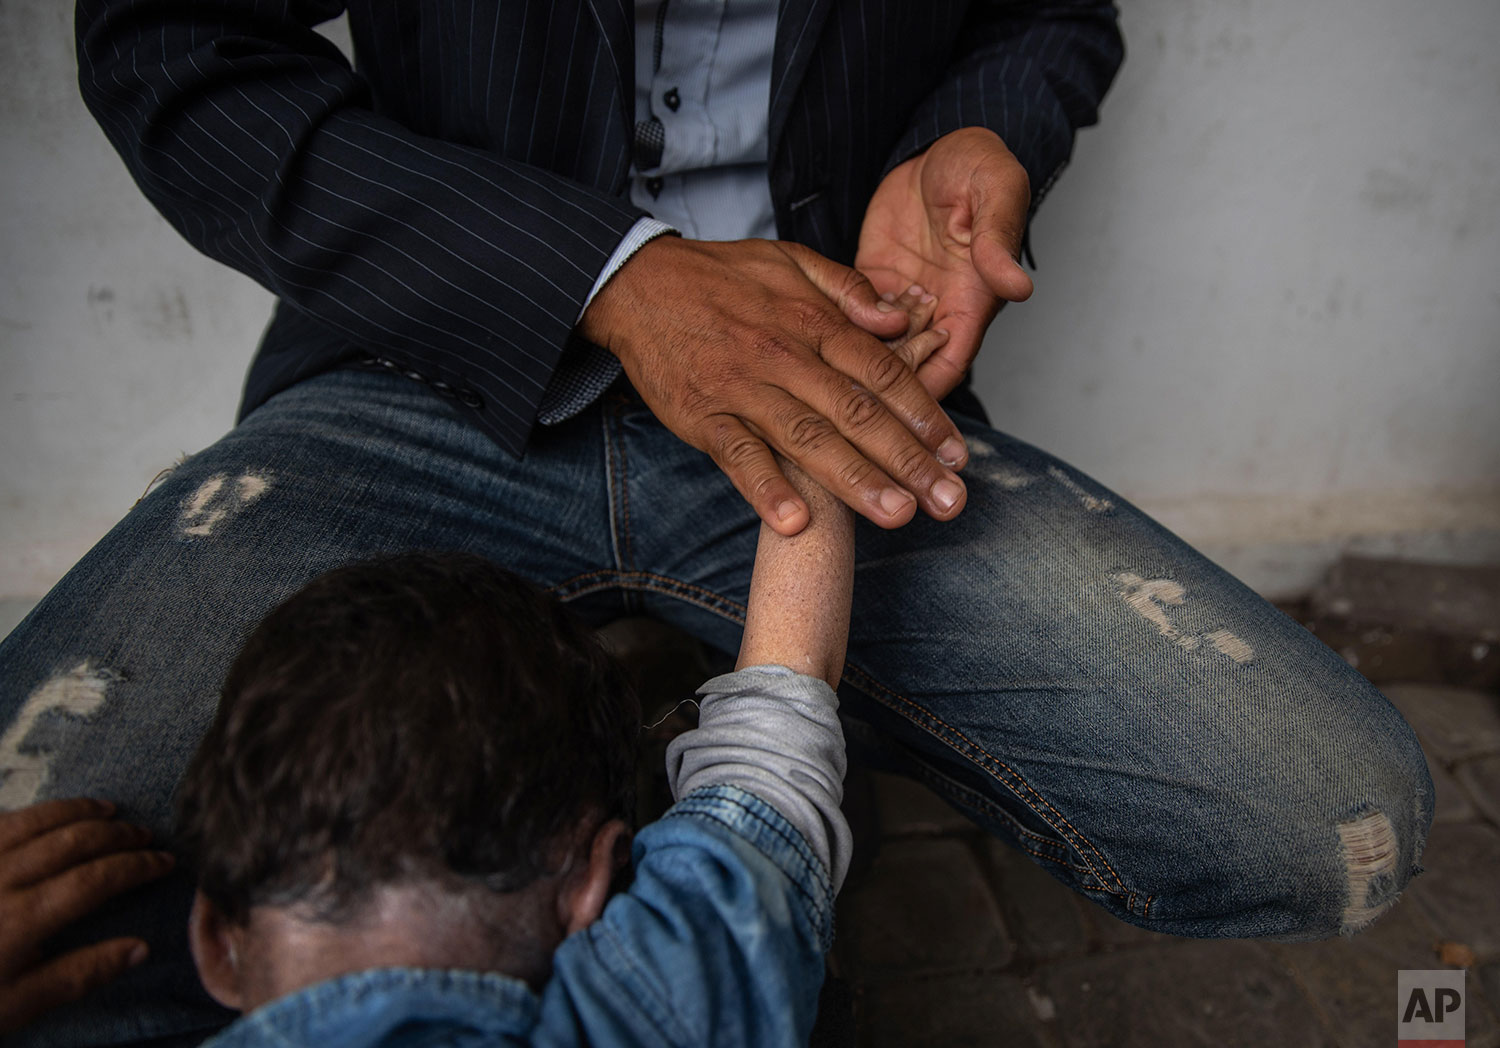 In this Wednesday, July 24, 2019 photo, a father applies a cream on the arms and neck of his child who is affected by a rare disorder called xeroderma pigmentosum, or XP, as they wait for a medical consultation in a hospital in Casablanca, Morocco. (AP Photo/Mosa'ab Elshamy)